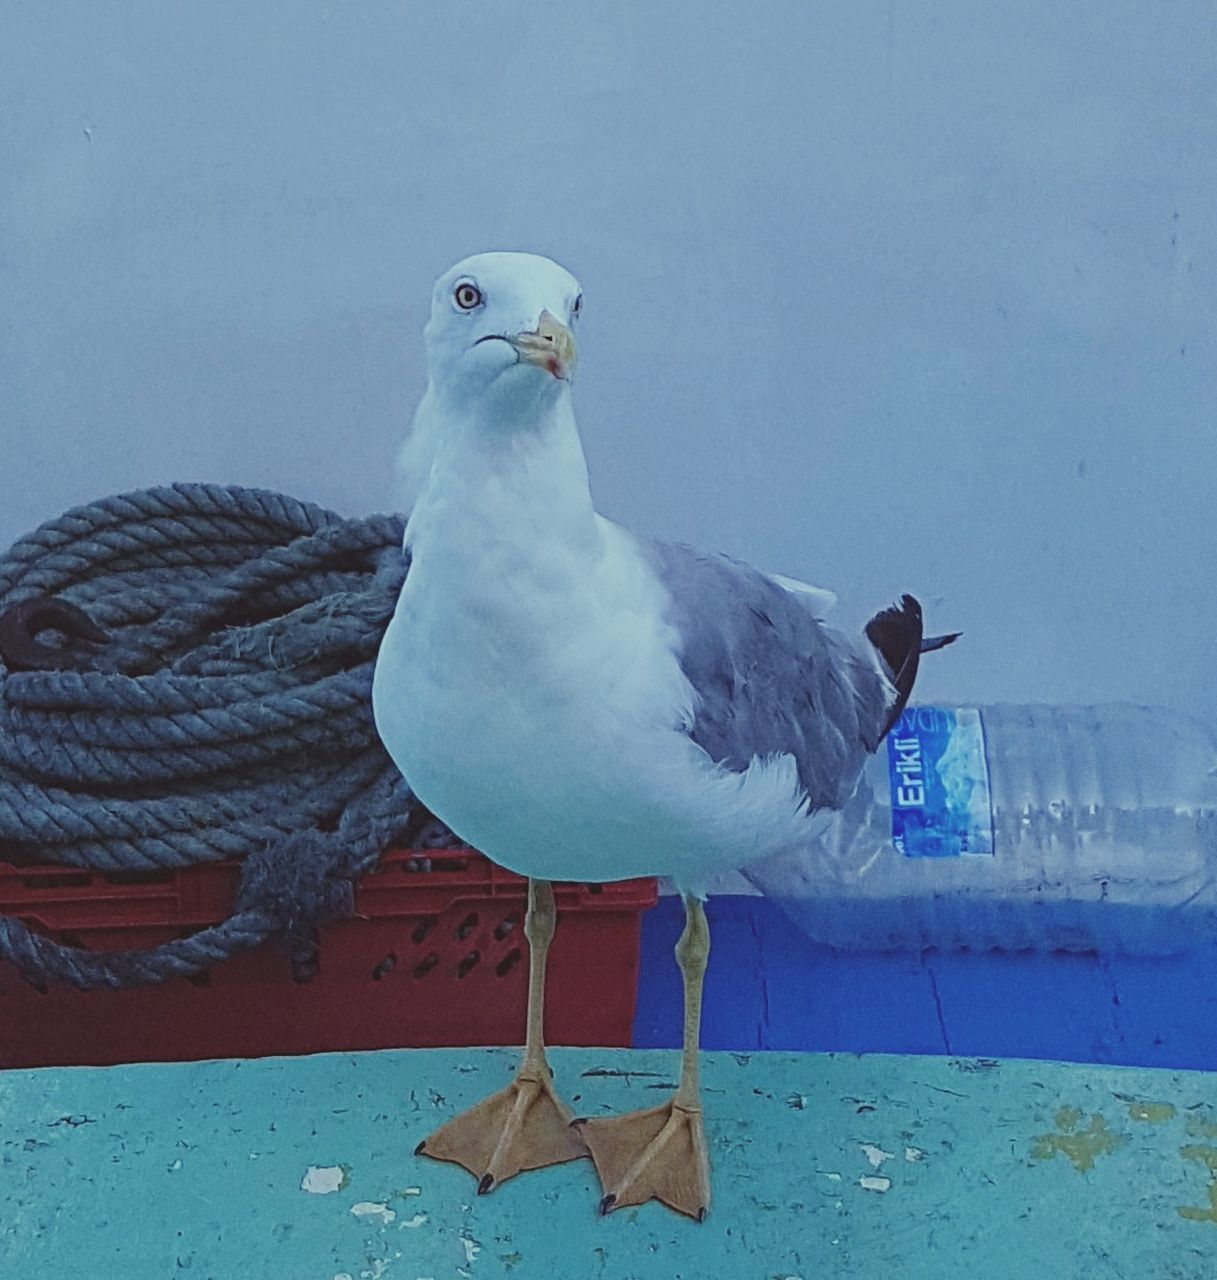 bird, animal themes, animals in the wild, one animal, day, animal wildlife, no people, seagull, nature, outdoors, perching, water, close-up, mammal